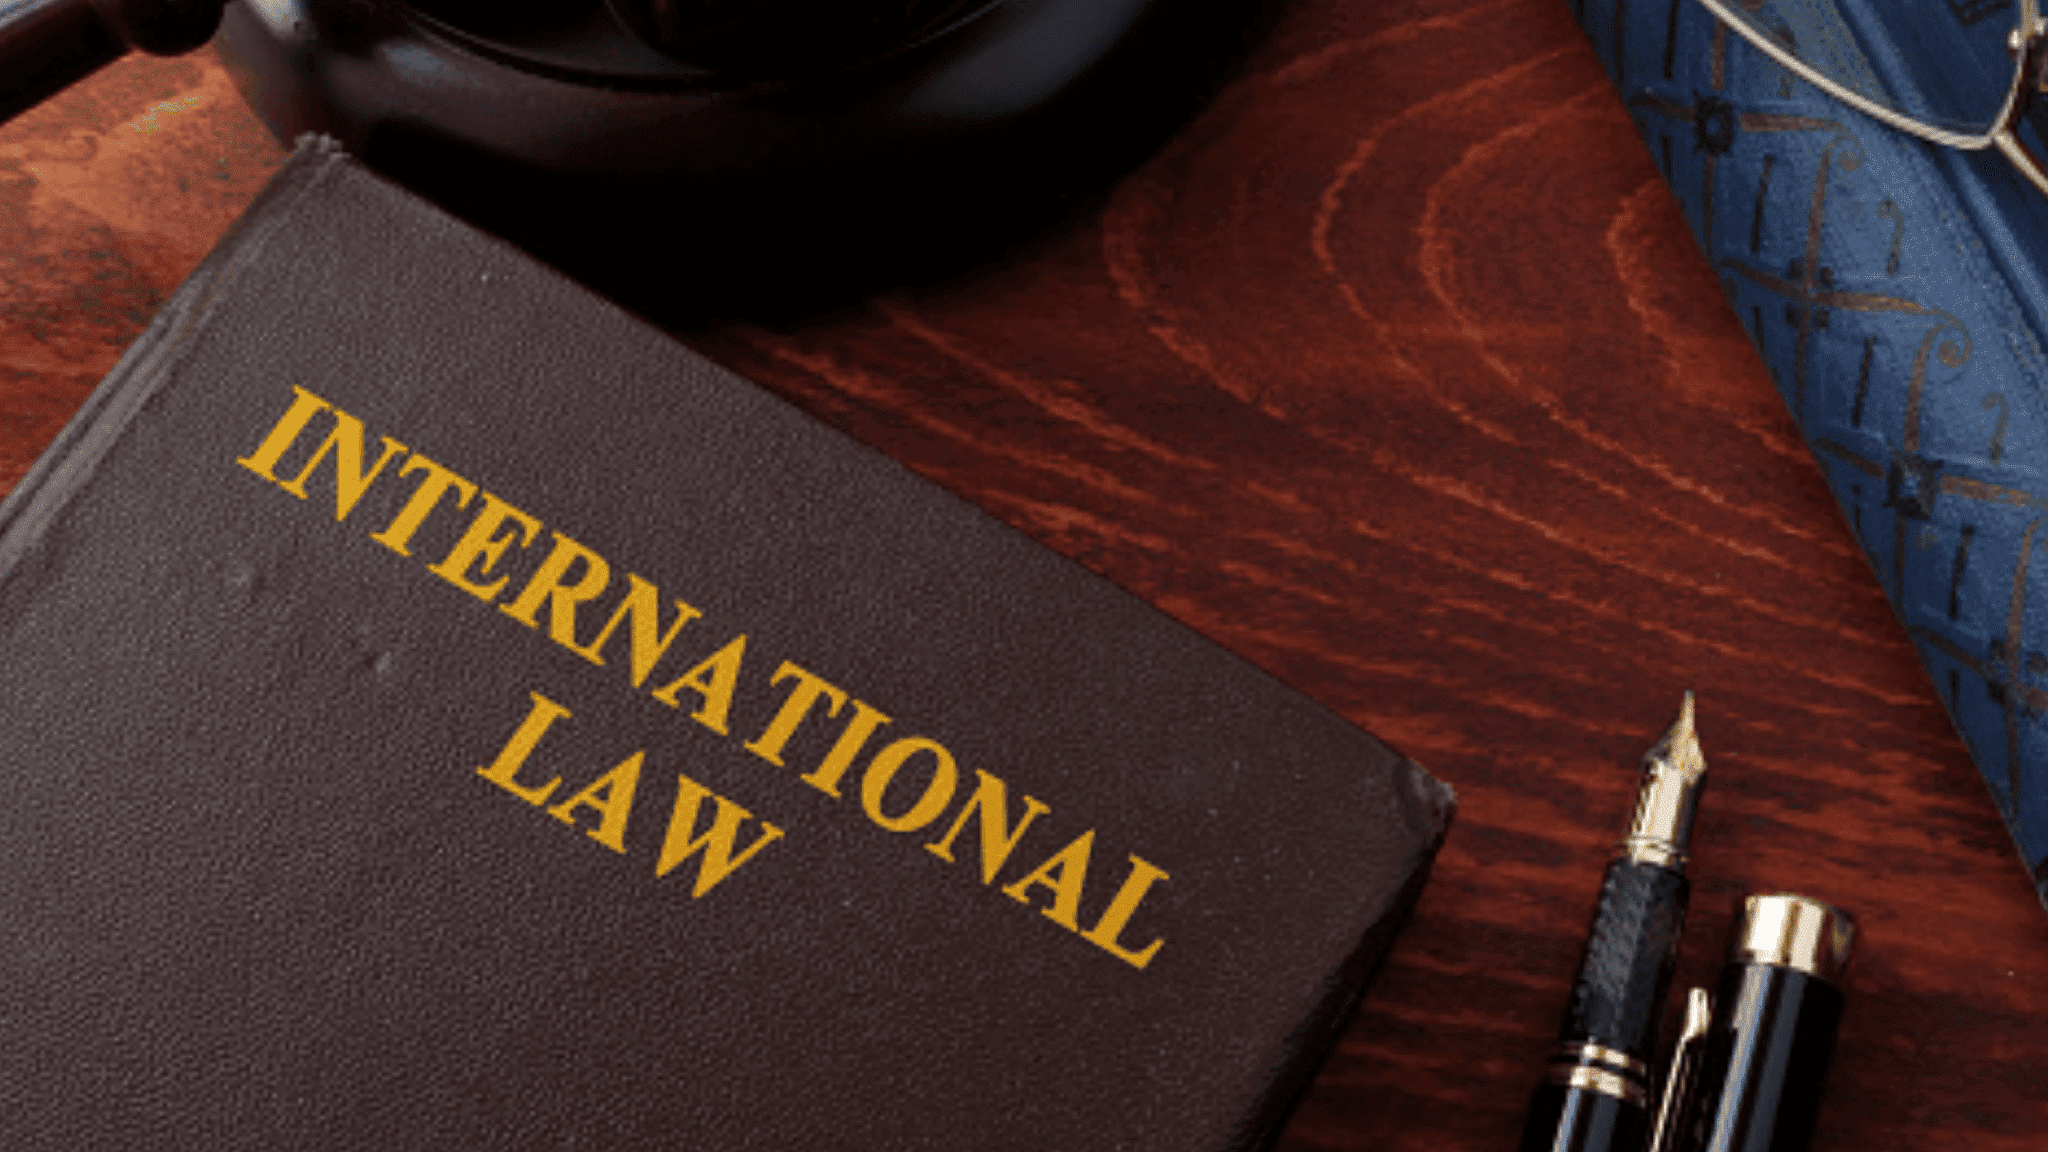 The Relationship between International Law and Municipal Law